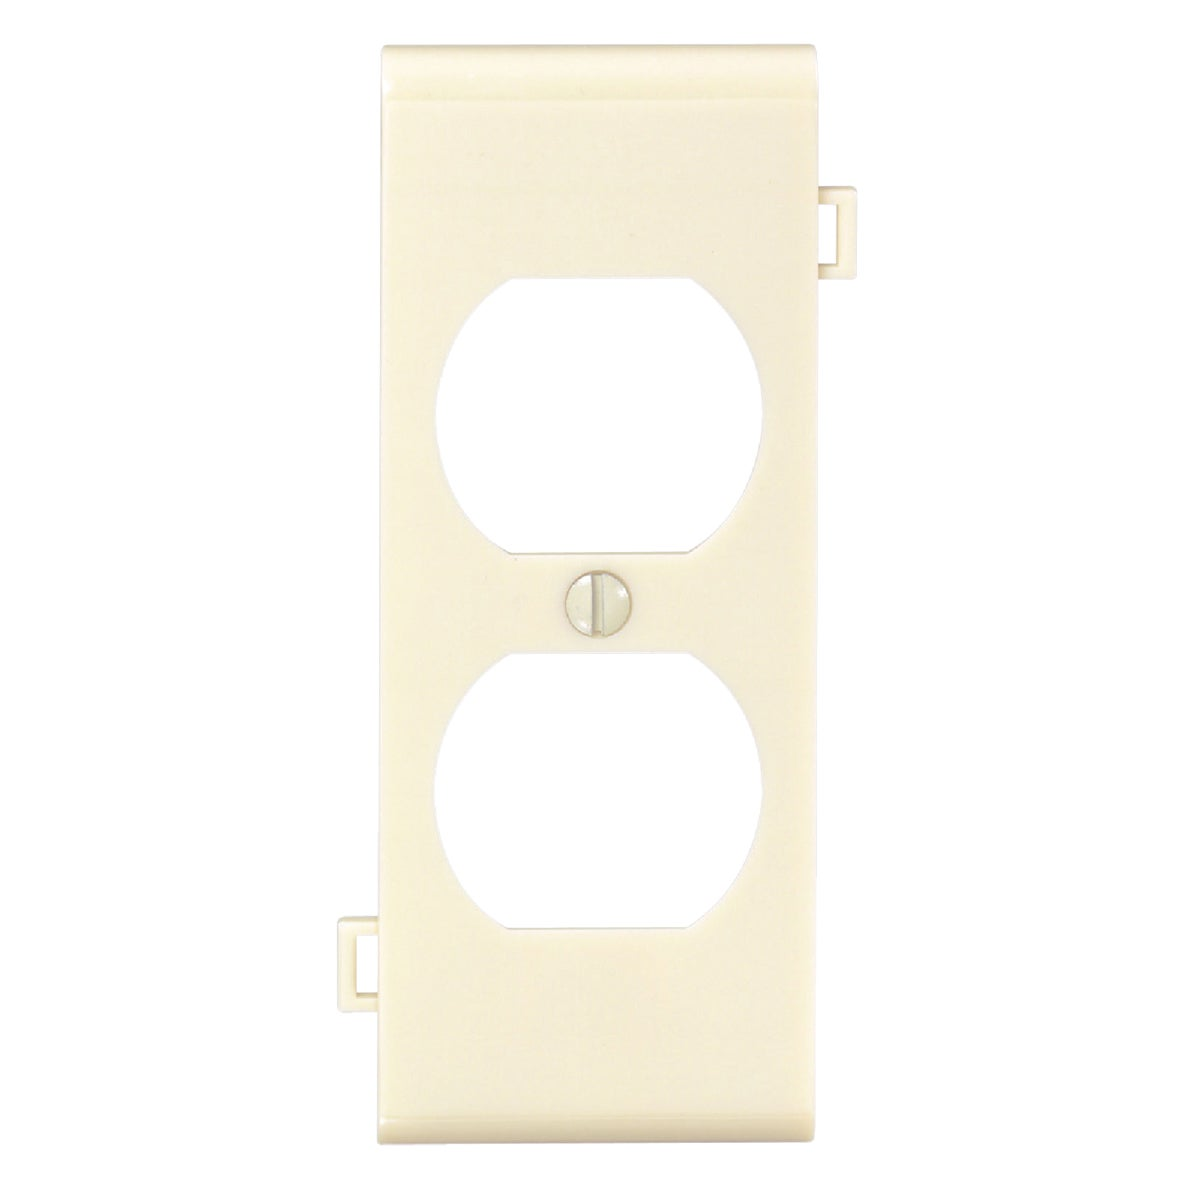 IV DUPLEX CENTER PLATE - PSC8I by Leviton Mfg Co